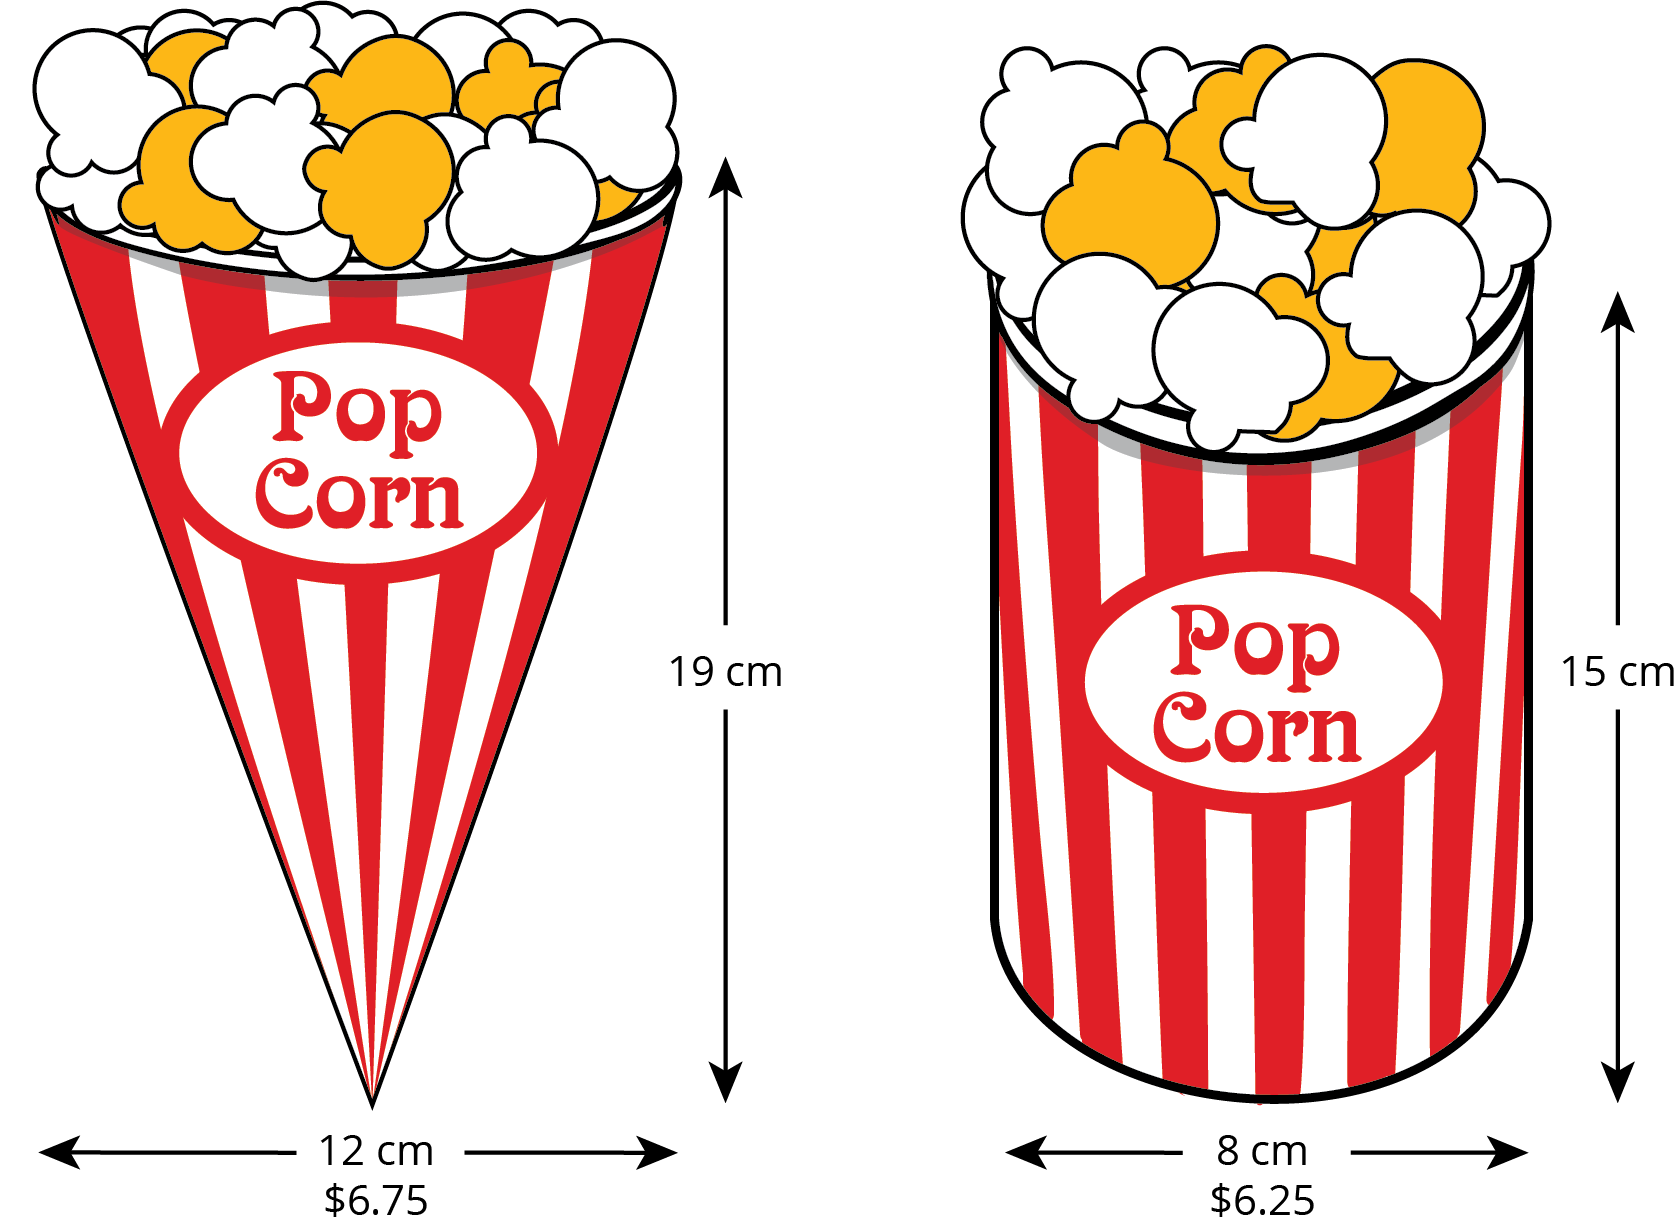 An image of two containers of popcorn. The first container of popcorn is shaped like a cone. The distance from the edge of the opening to the point at the bottom is labeled 19 centimeters. The distance that passes through the center of the circlular base from one edge of the opening to the other edge of the opening is 12 centimeters. The price is labeled as 6 point 7 5 dollars. The second container of popcorn is shaped like a cylinder. The horizontal distance from the edge of the opening to the bottom of the container is 15 centimeters. The distance that passes through the center of the circular base from one edge of the opening to the other edge of the opening is 8 centimeters. The price is labeled as 6 point 2 5 dollars.